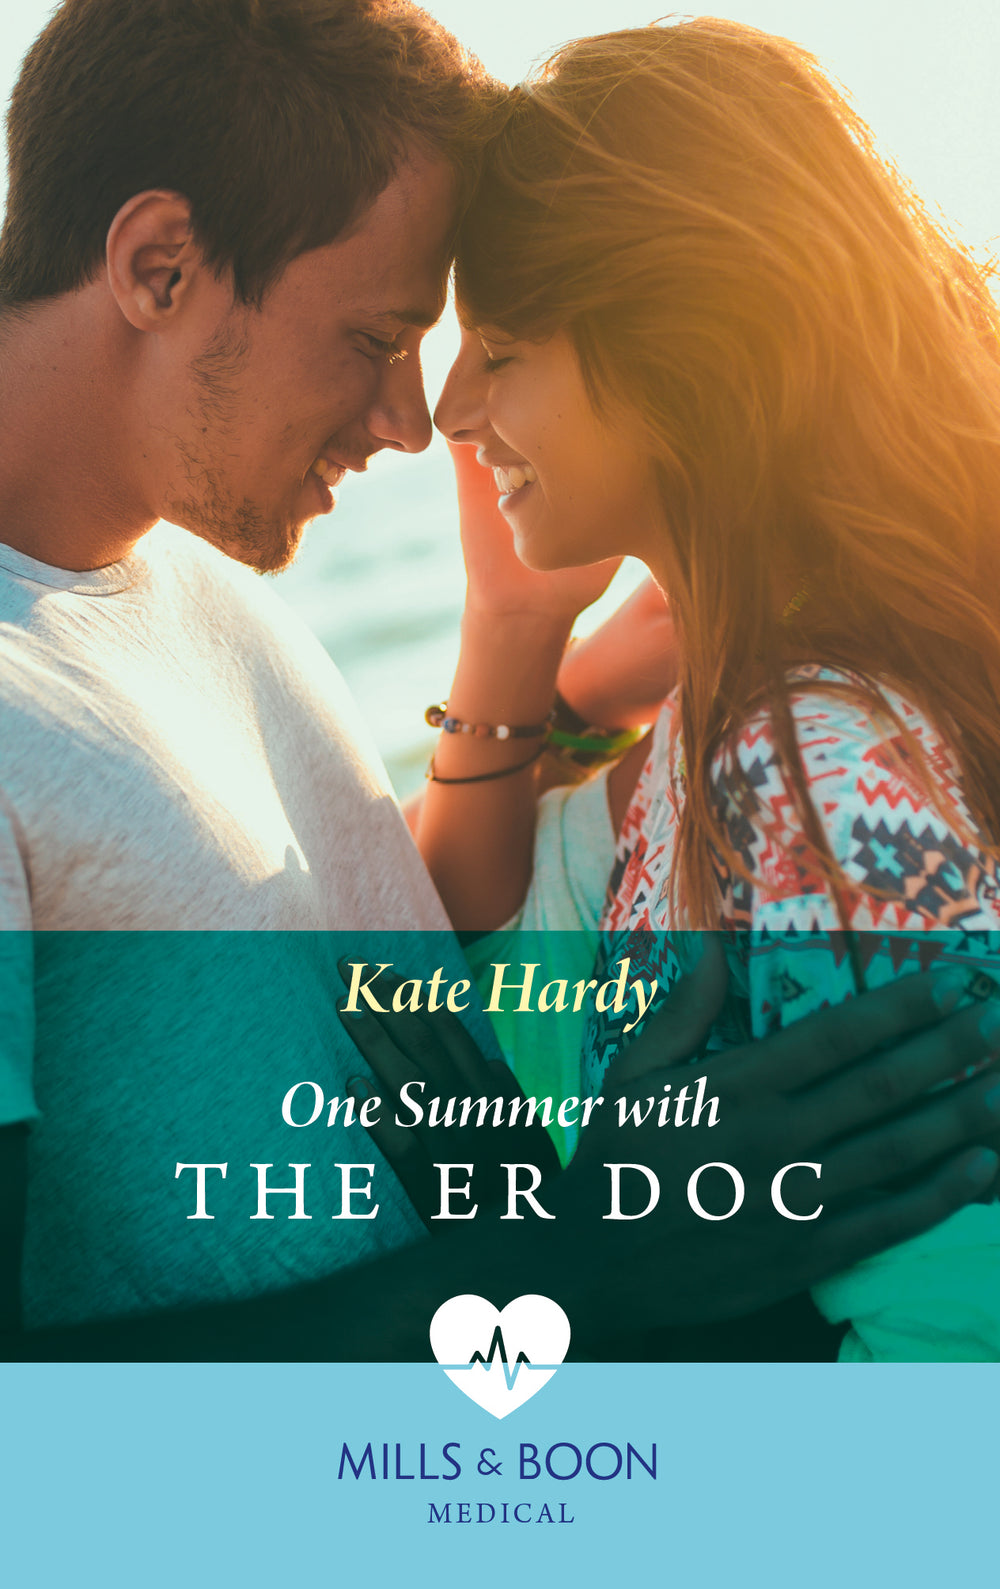 One Summer with the ER Doc - Chapter 9